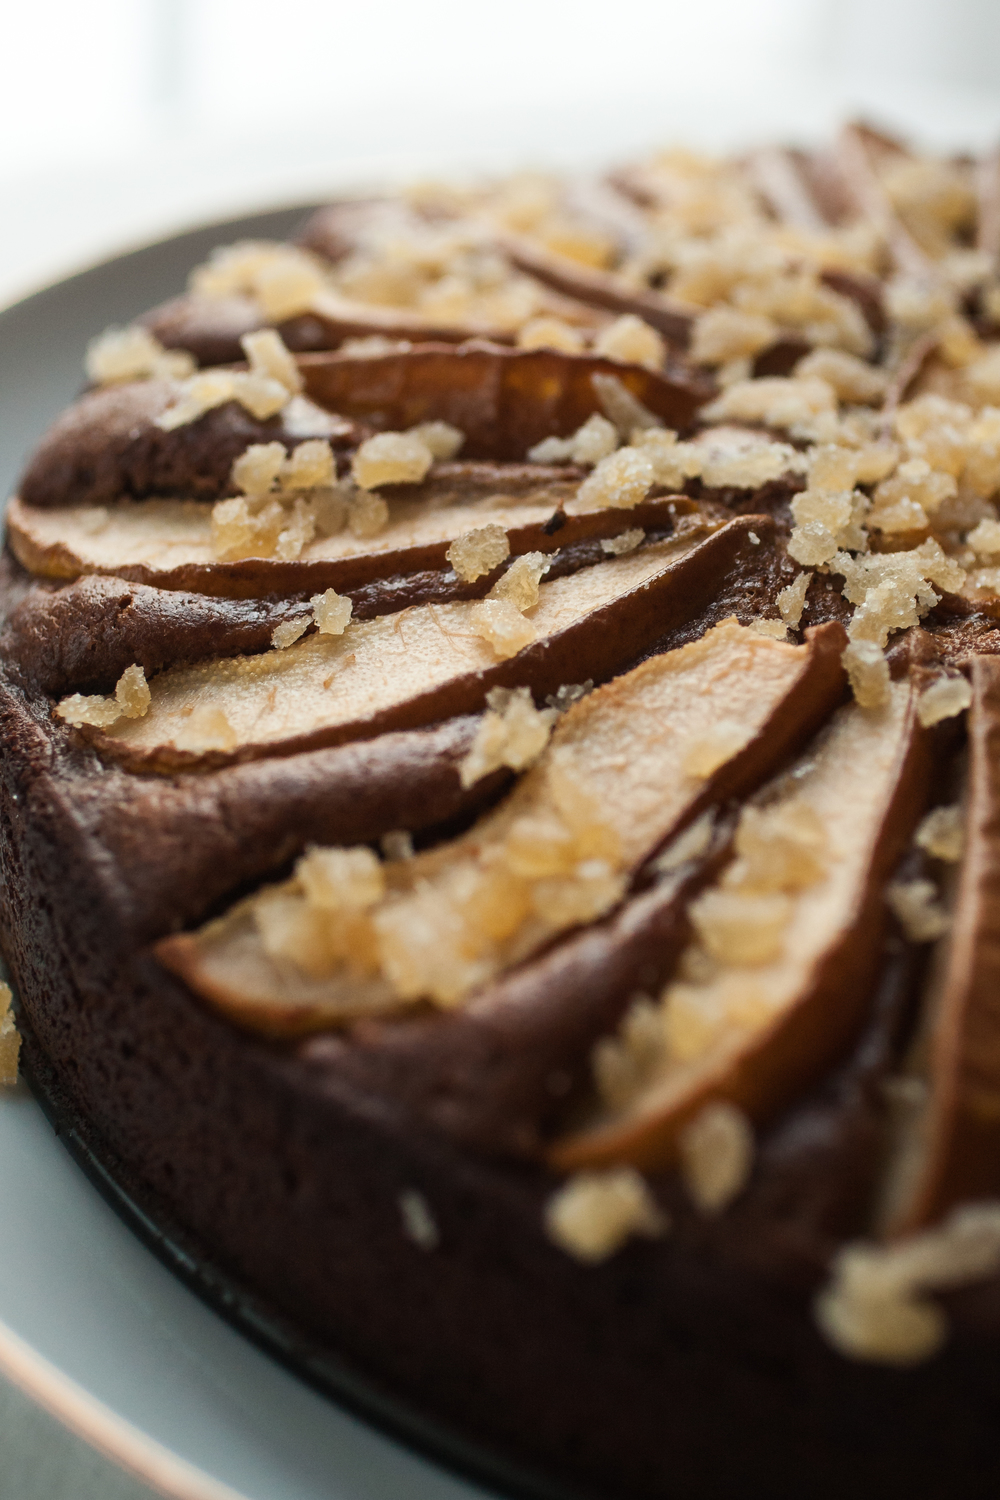 Produce On Parade - Molasses & Pear Gingerbread - This moist gingerbread cake is perfectly spiced and reminiscent of the holidays. Infused with molasses, nutmeg, and ginger with just the right of amount of sweetness and topped with sliced pears and candied ginger pieces, it's super easy to make and is sure to be loved by all.